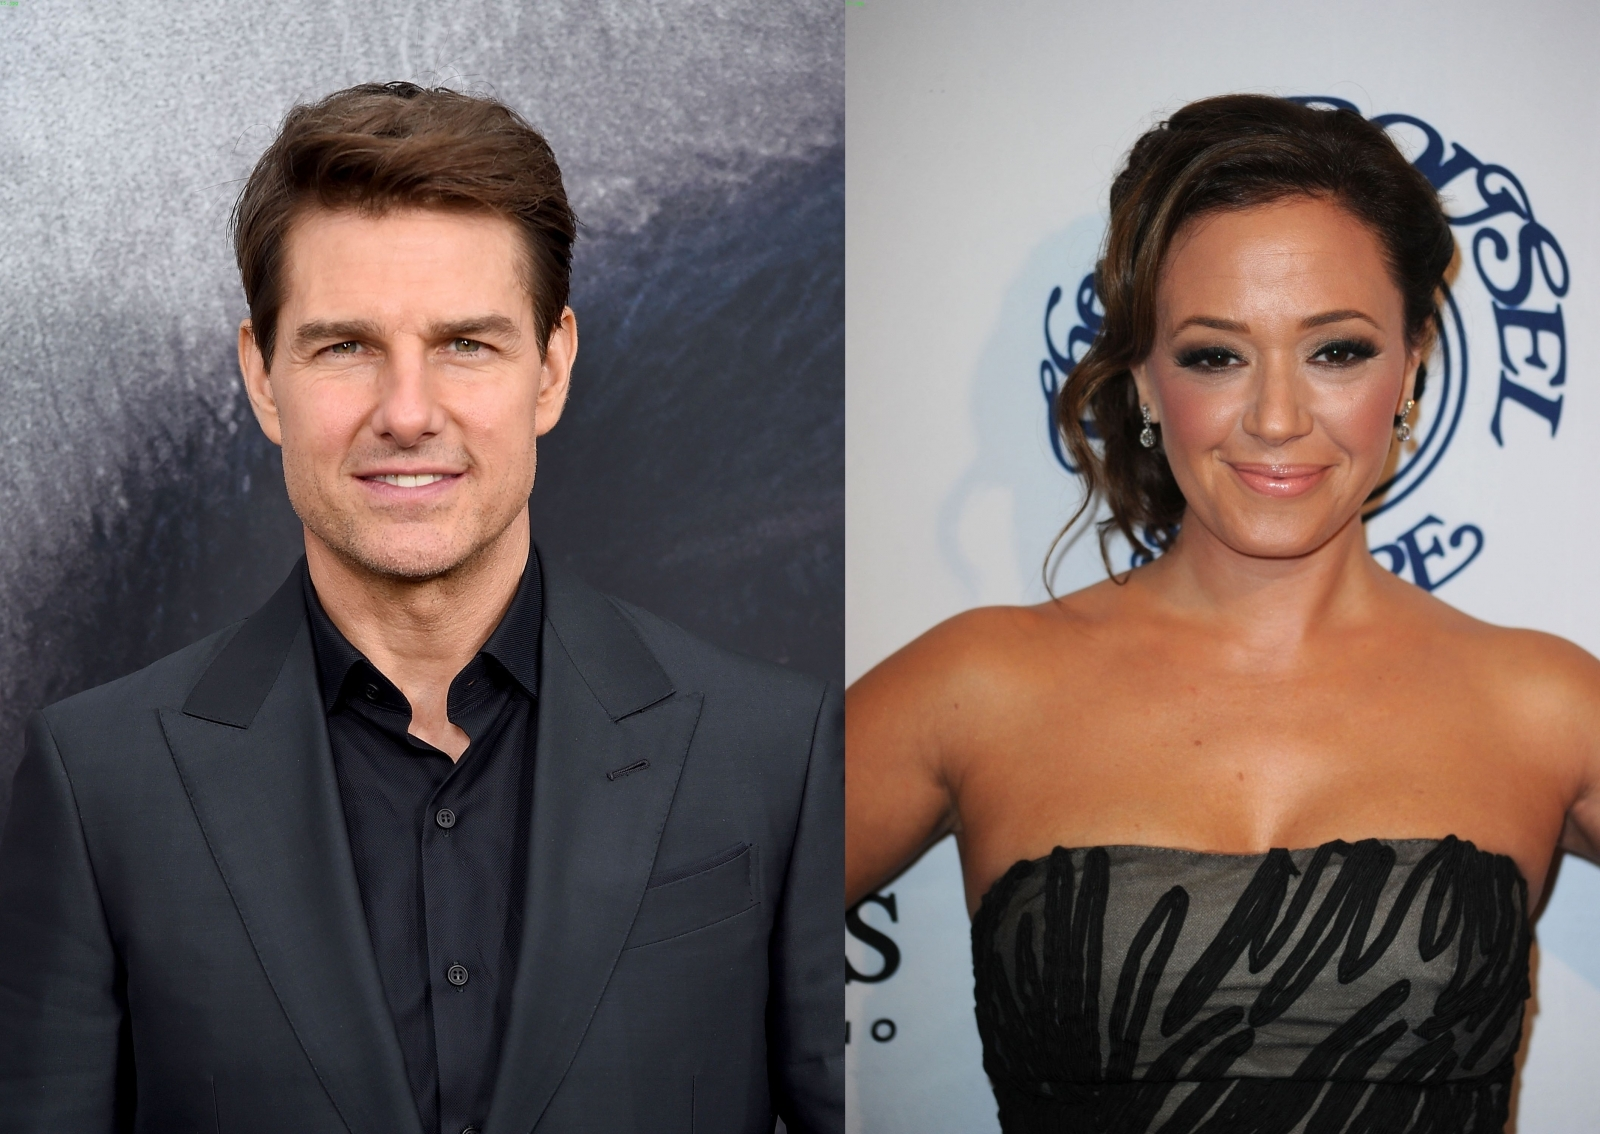 Tom Cruise and Leah Remini